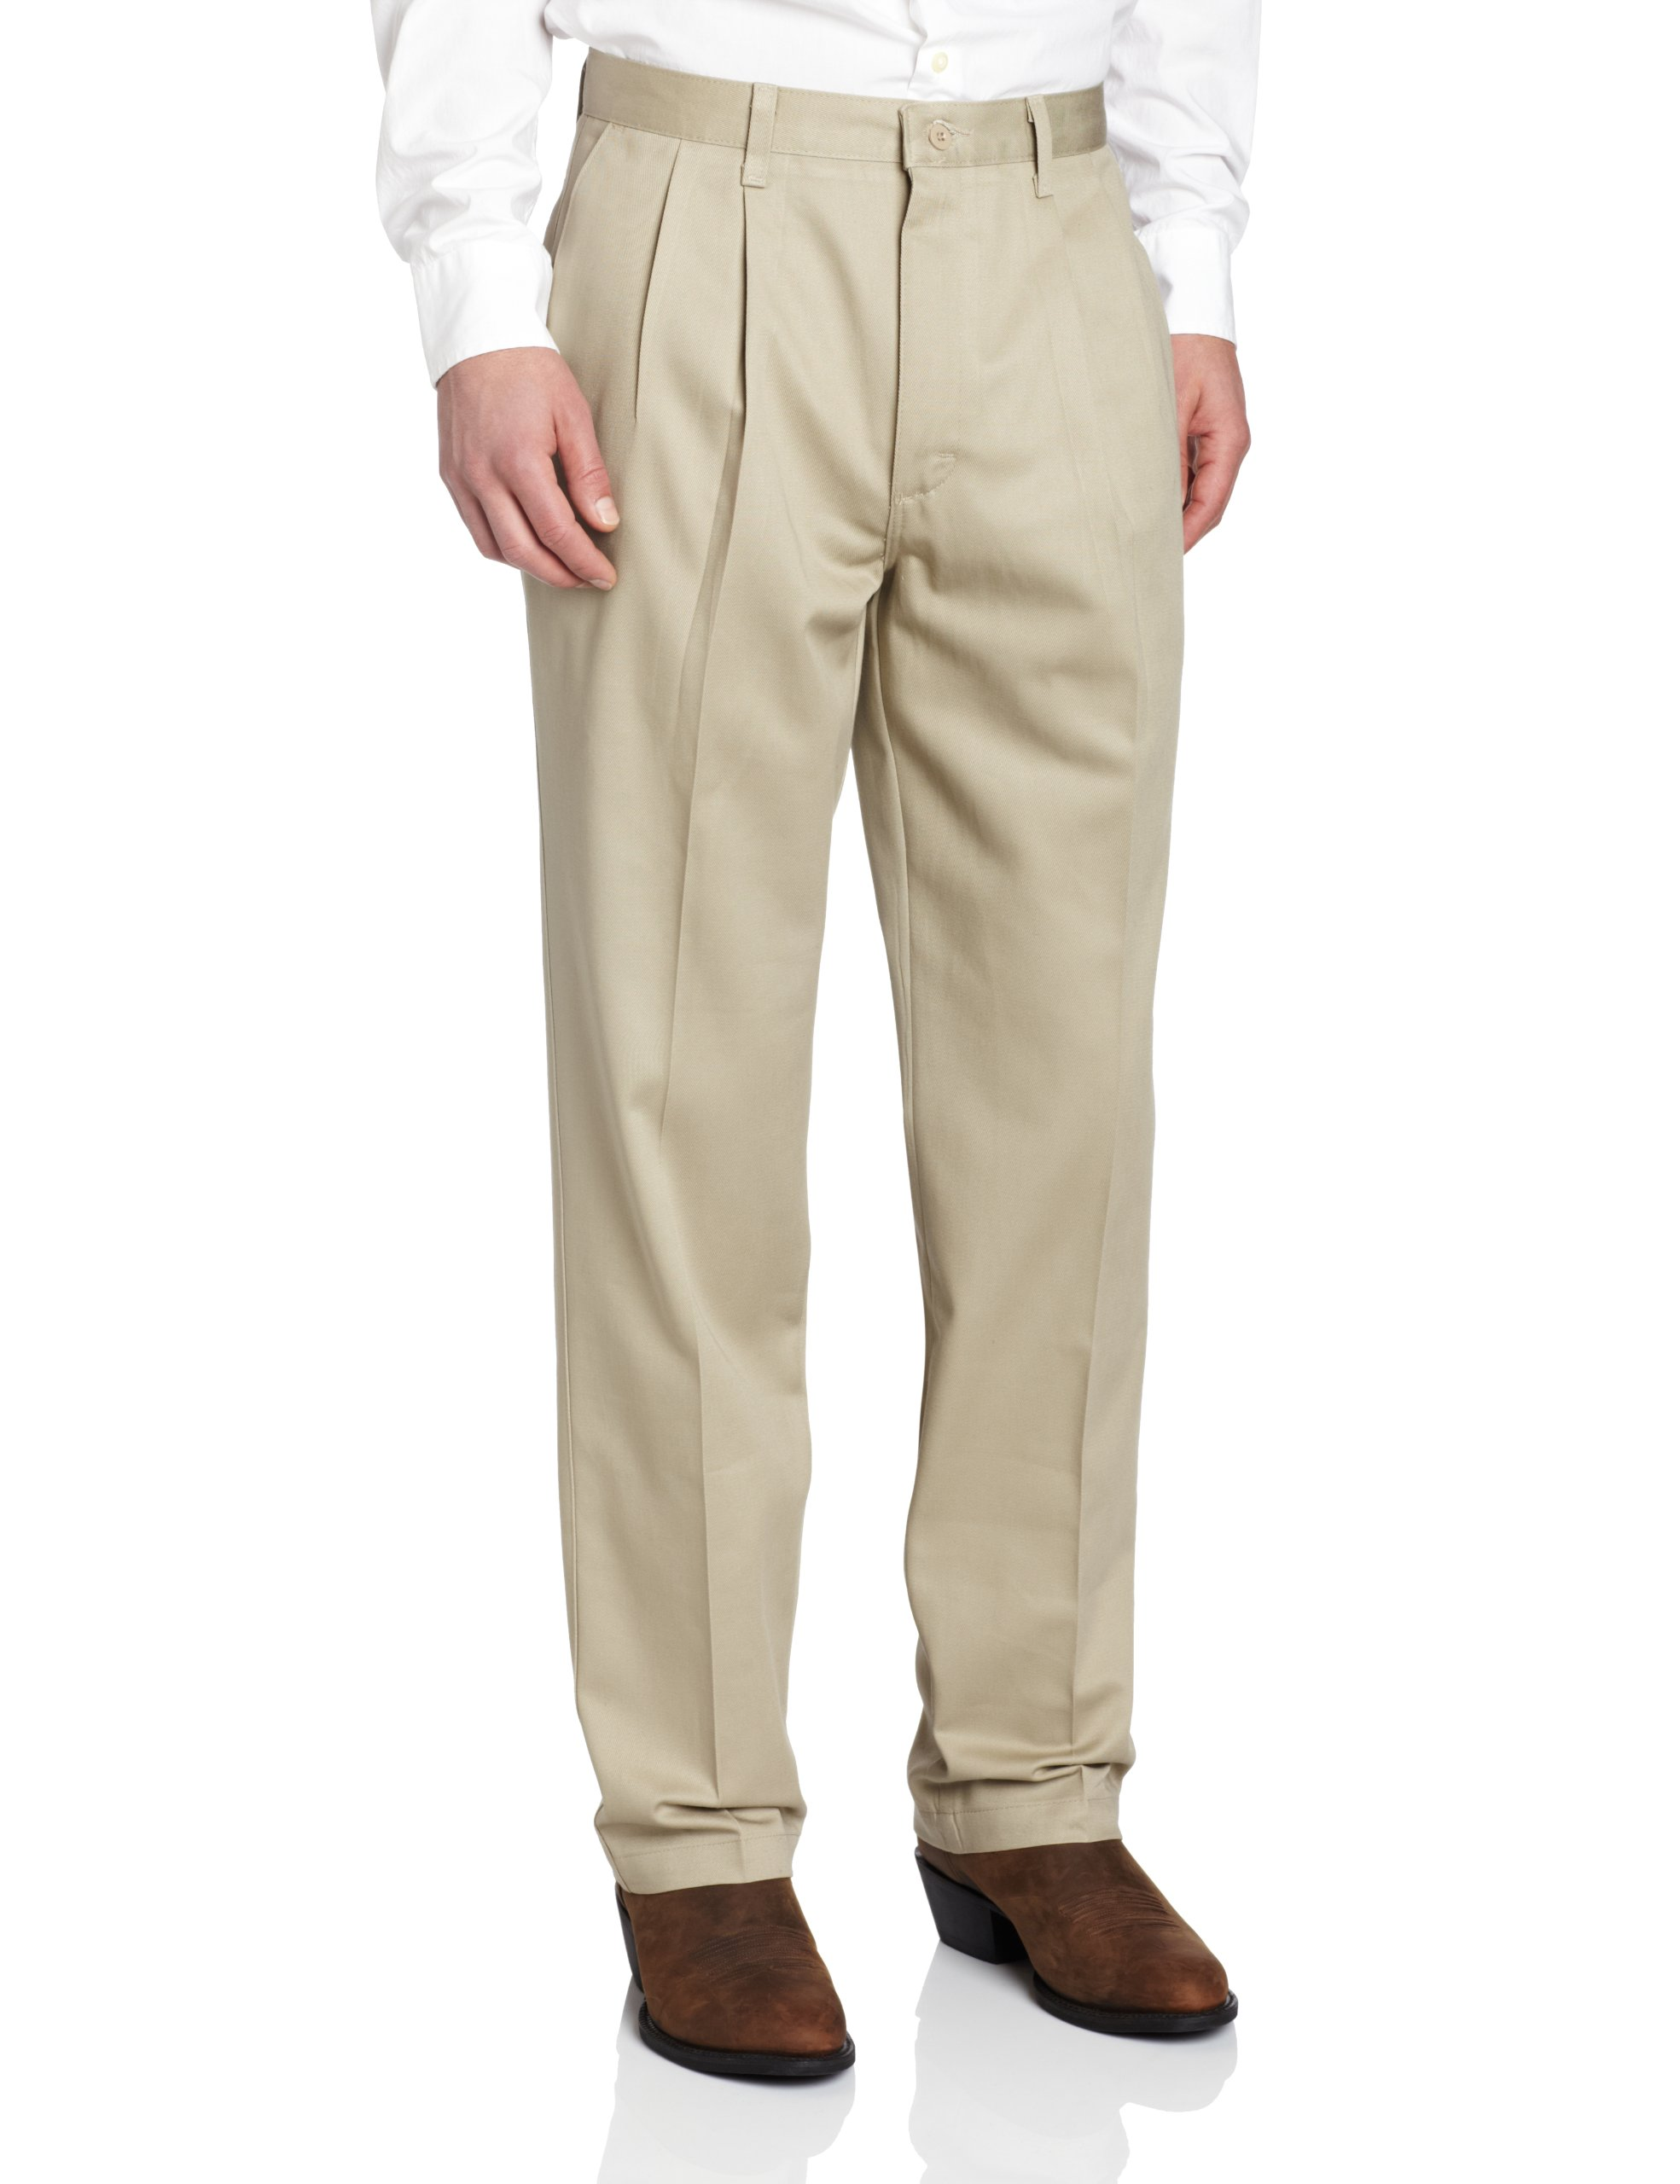 Wrangler Men's Tall Riata Pleated Front Casual Pant, Khaki, 32x38